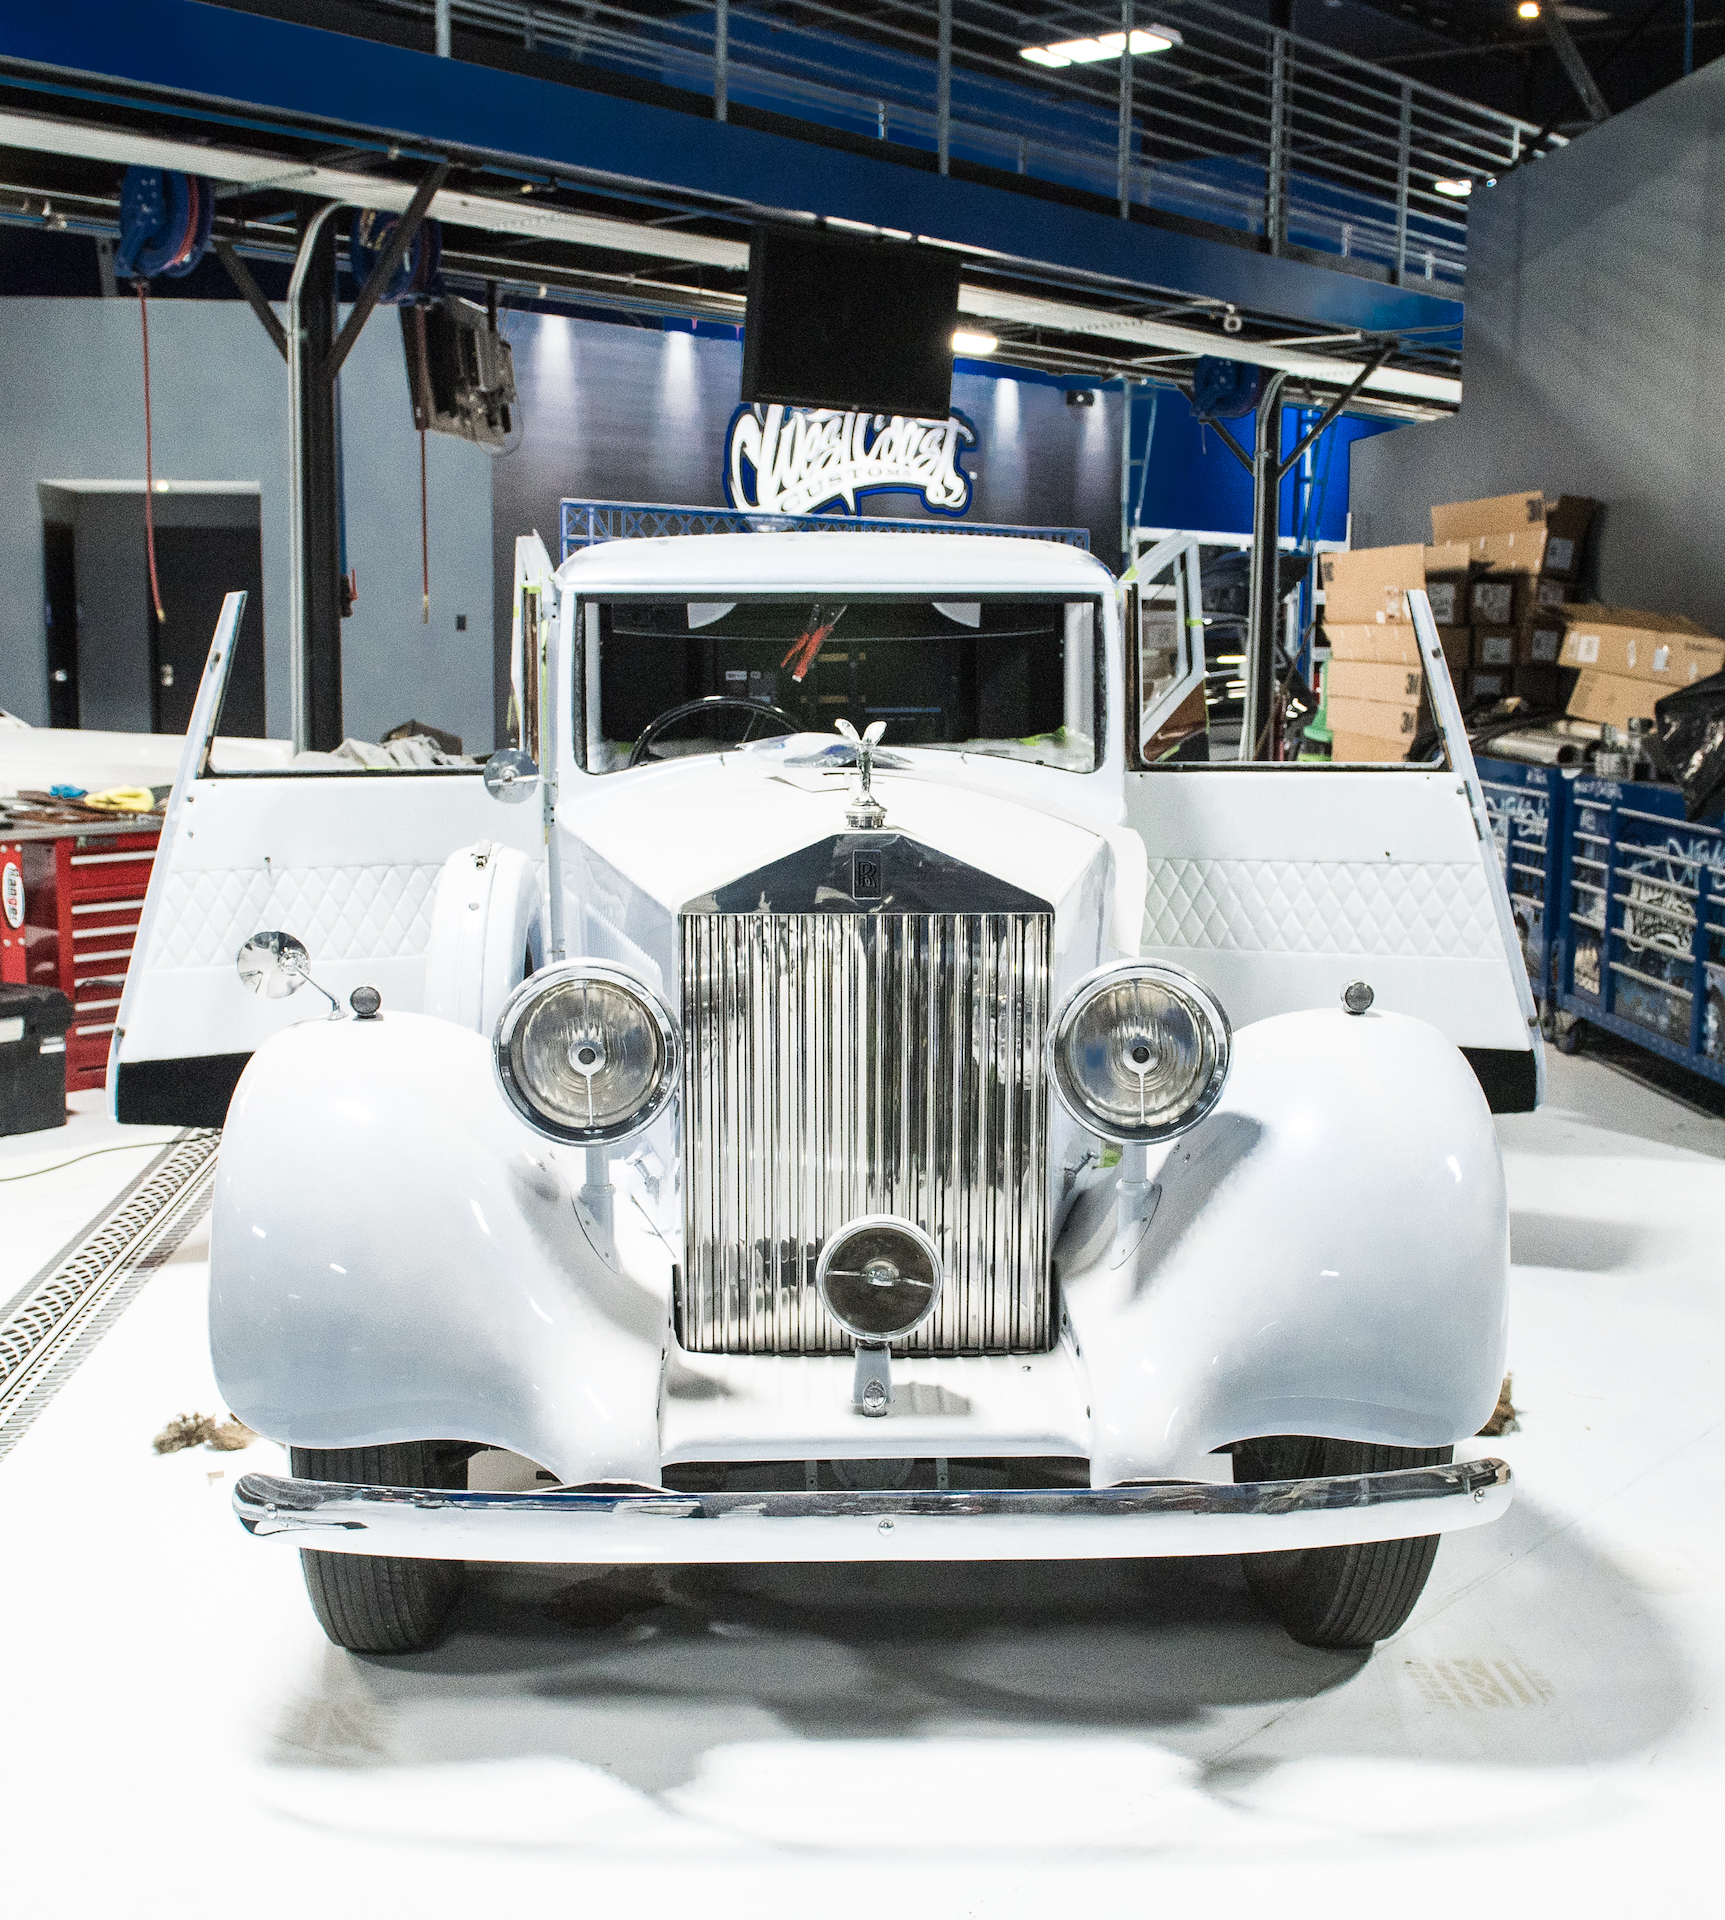 Musa's design of the 1967 Rolls Royce Phantom for Justin Bieber.